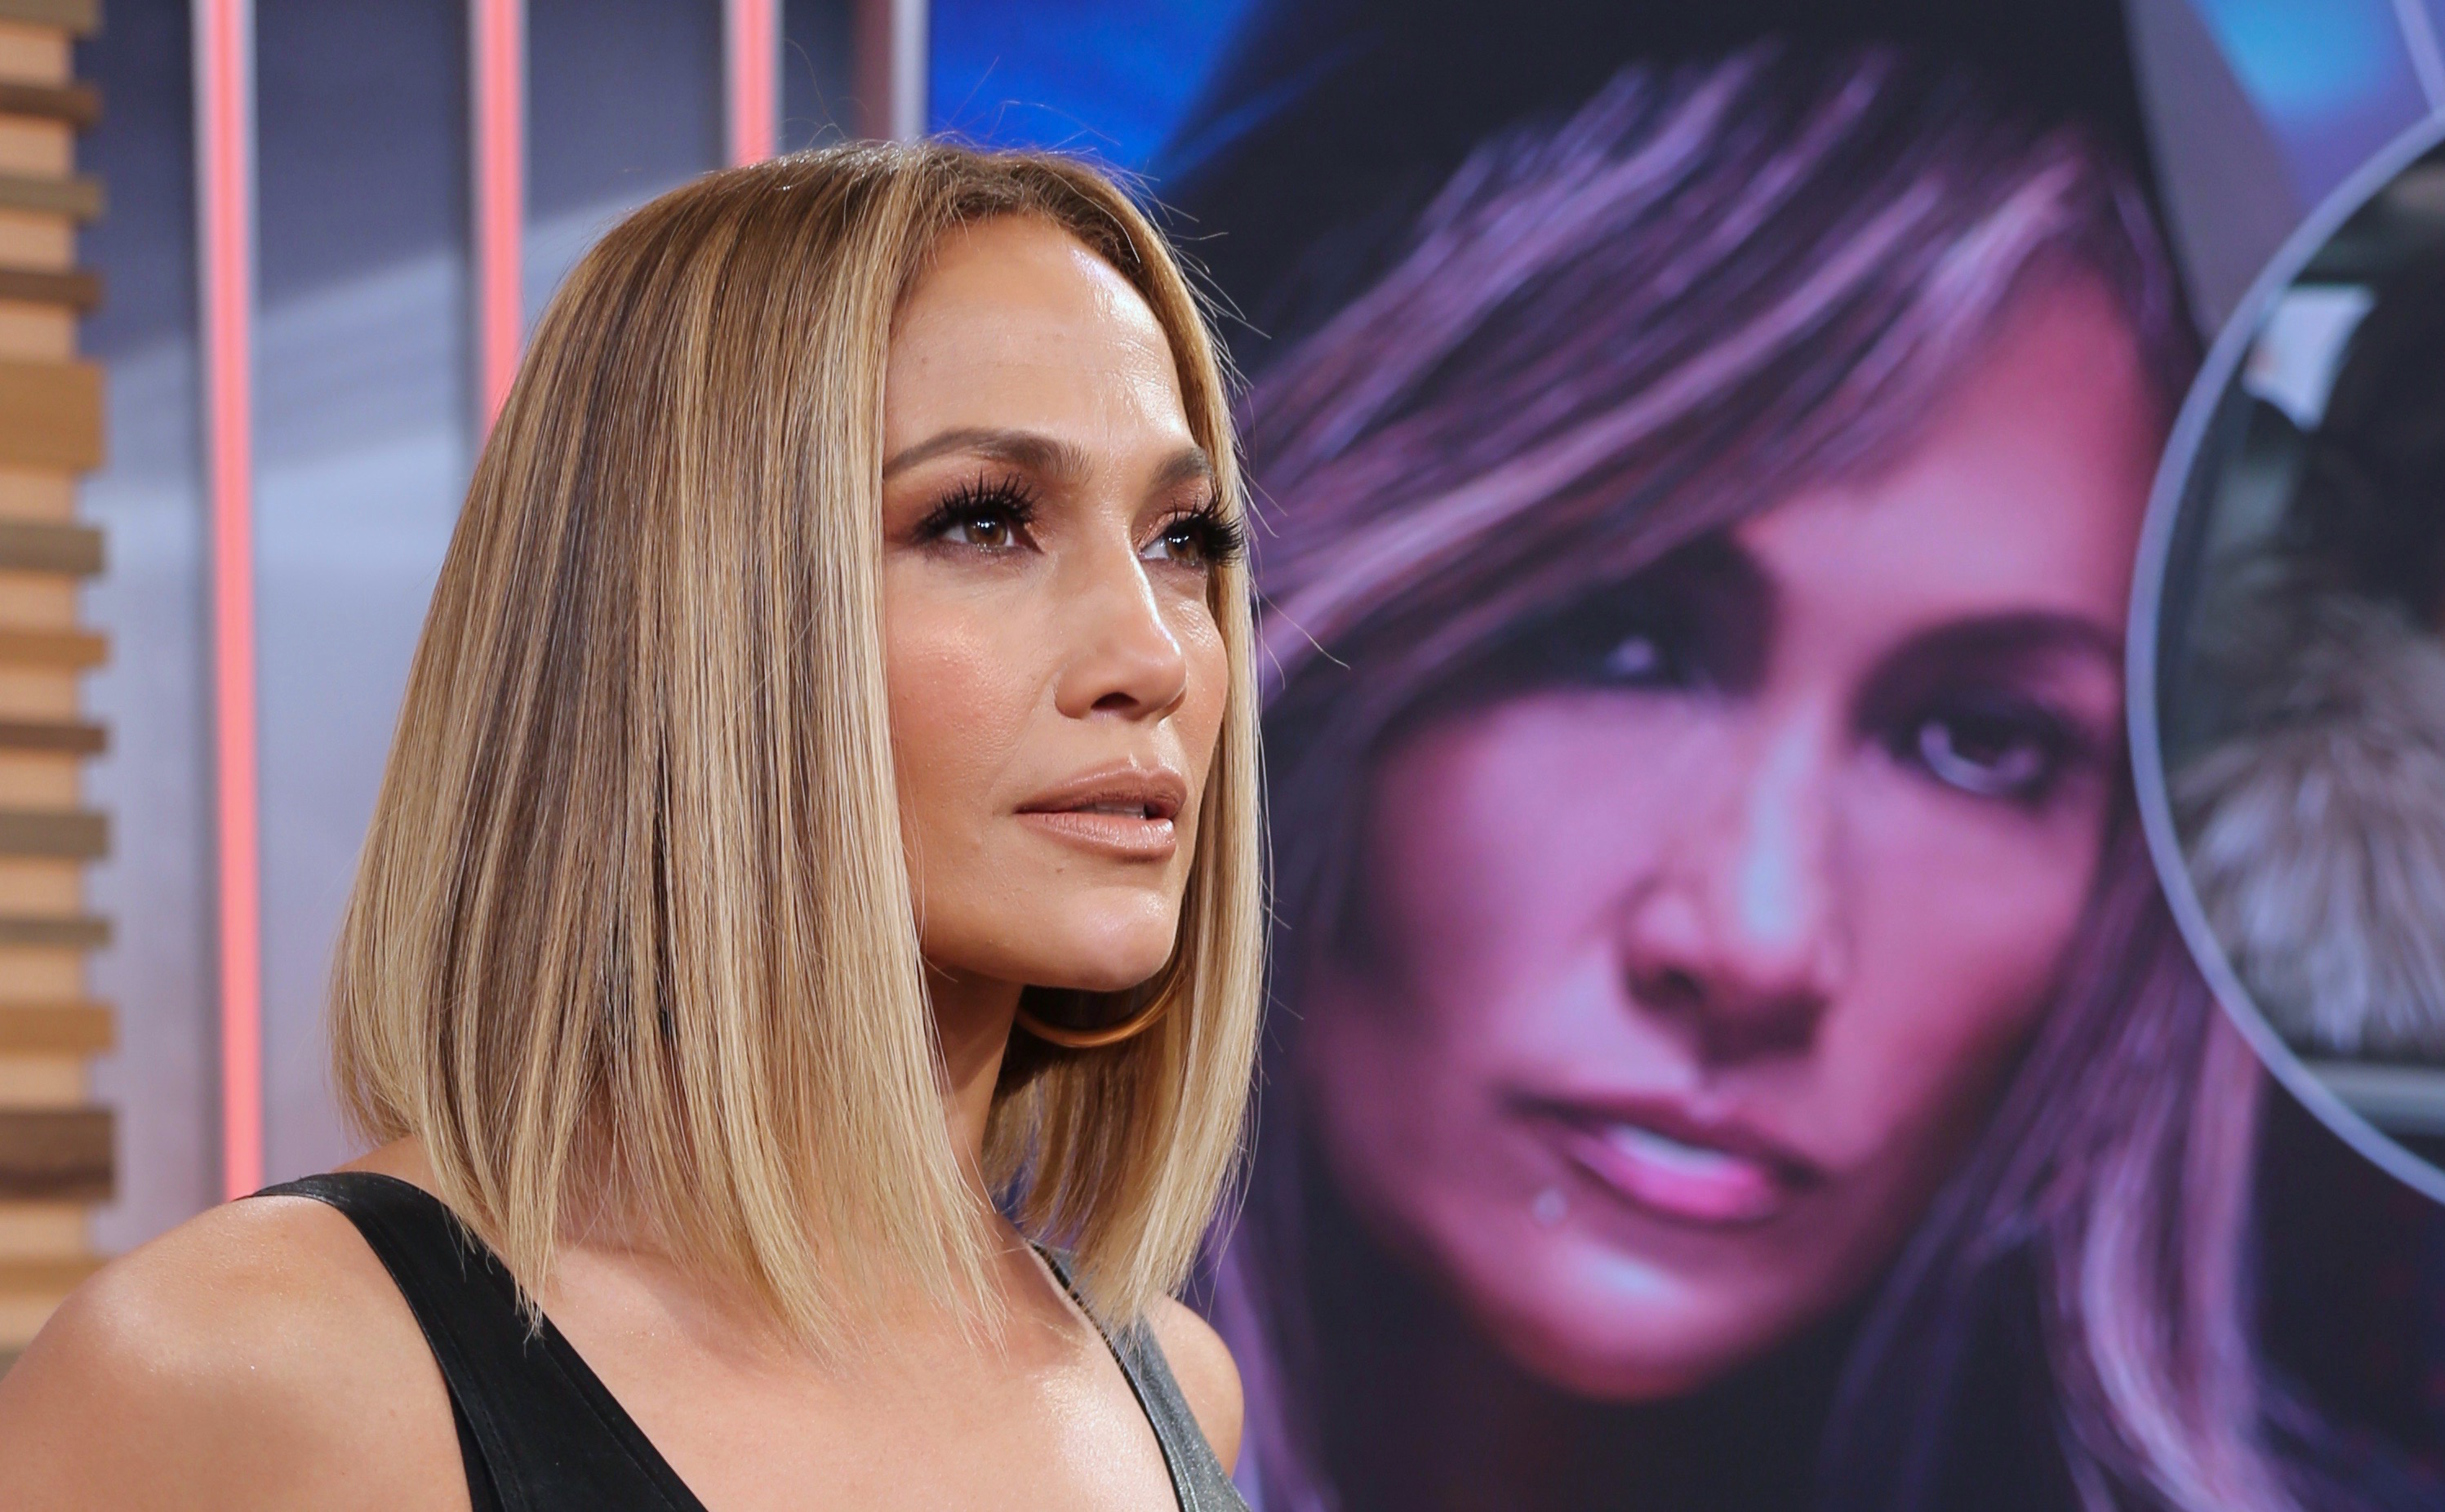 jennifer-lopez-visits-latino-morning-show-and-shows-off-huge-wedding-ring